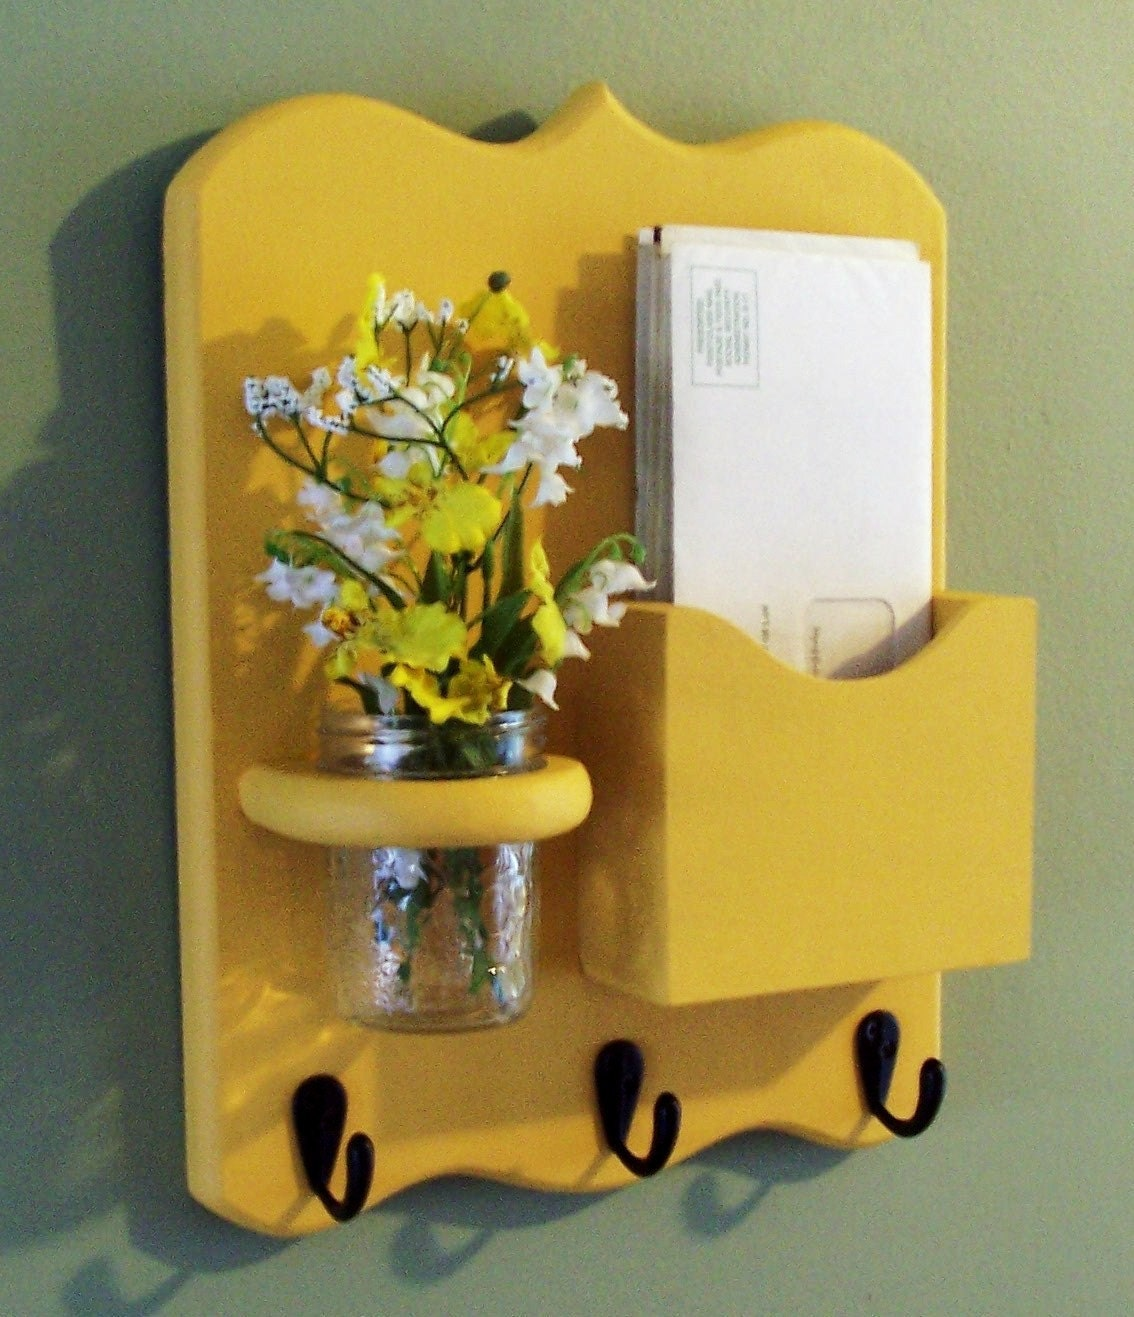 Letter Holder - Key Rack - Jar Vase - Organizer